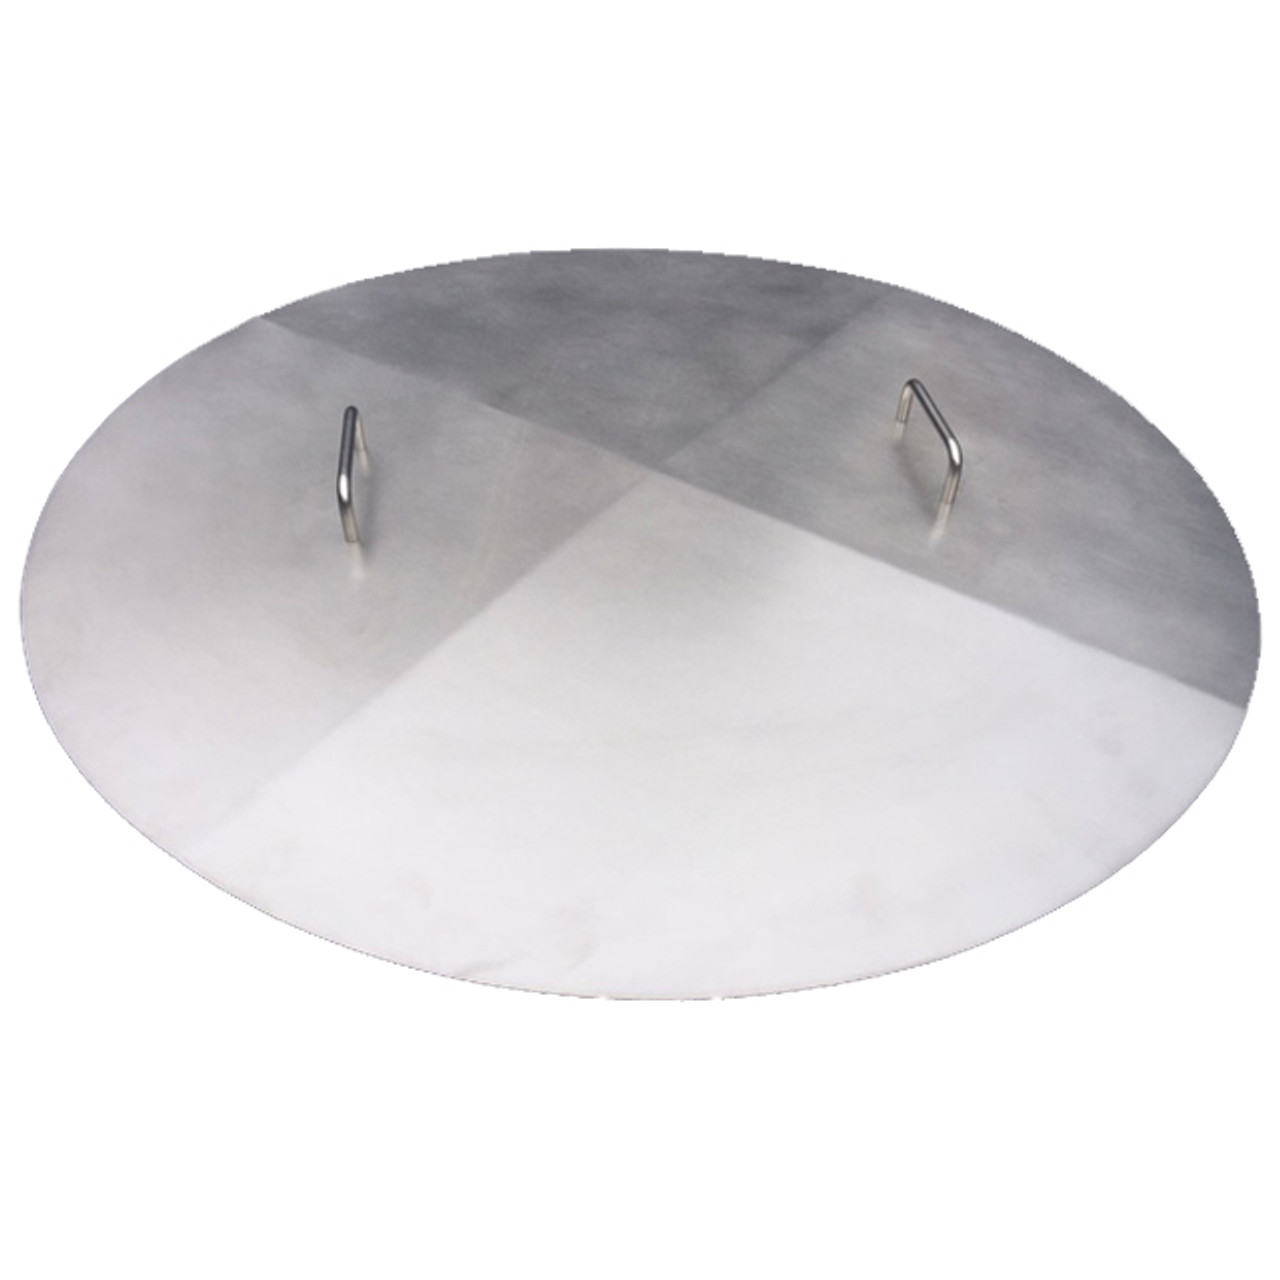 Round Metal Fire Pit Covers Flame Creation